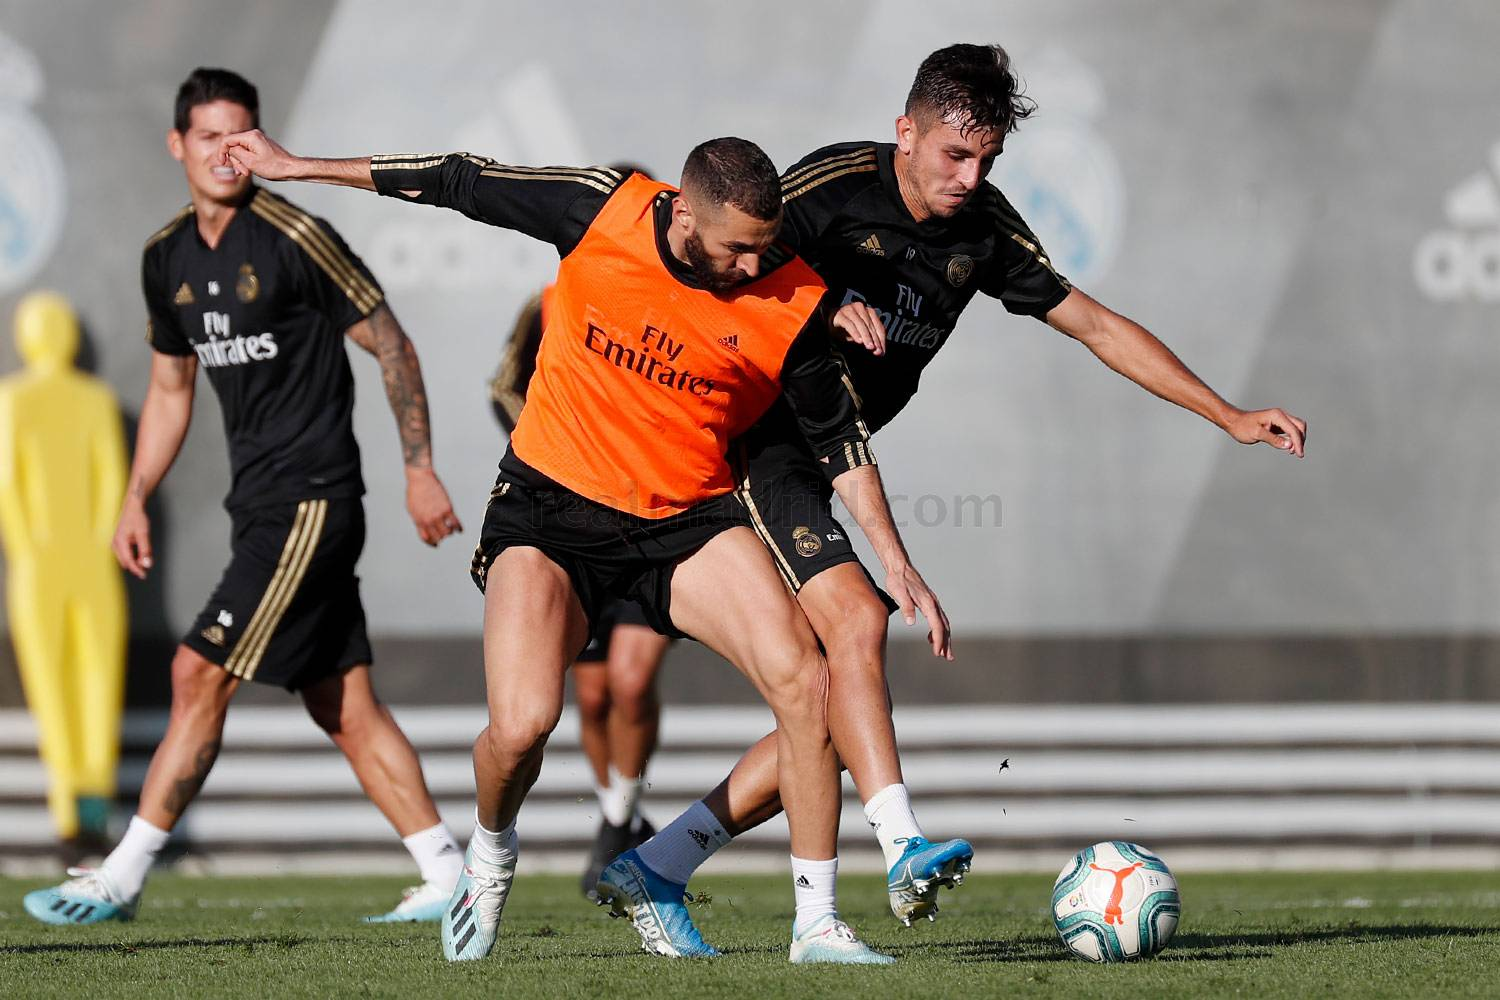 Real Madrid - Entrenamiento del Real Madrid  - 15-10-2019